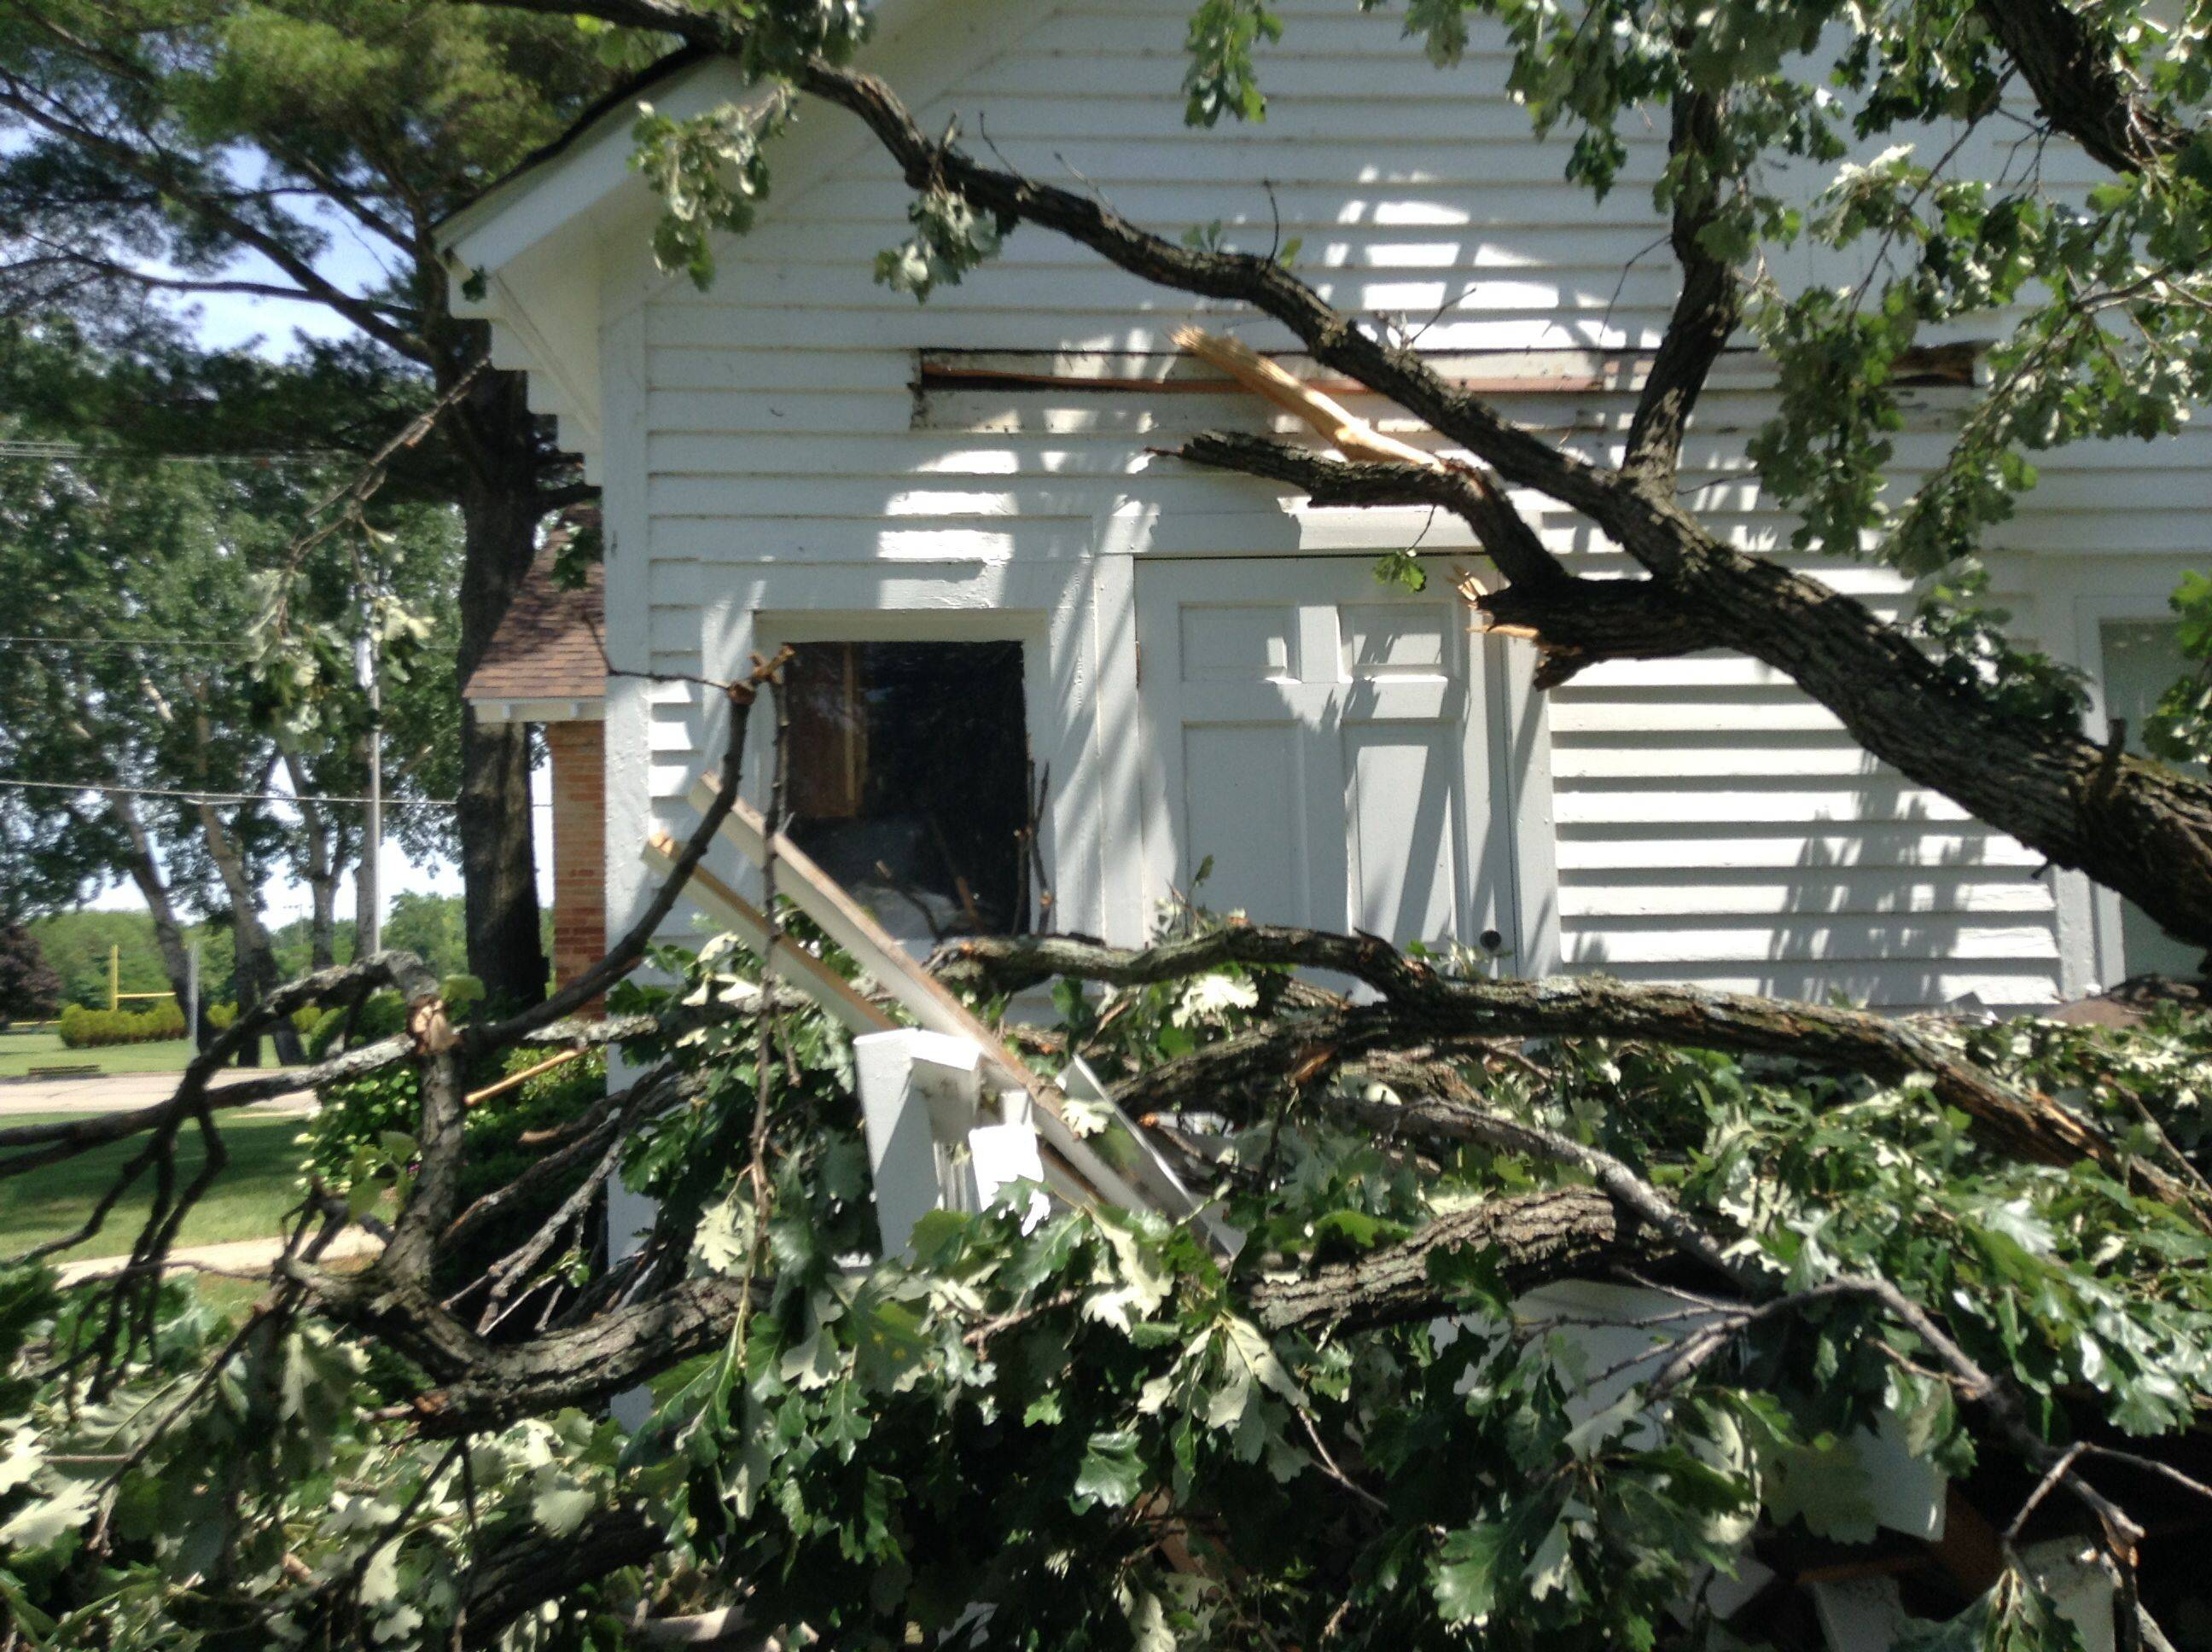 A large oak tree toppled by Saturday's storms landed on the porch of the Andrew C. Cook house, the first non-log cabin home built in Wauconda Township. Fortunately, the home itself, which dates back to 1850, did not suffer extensive damage.